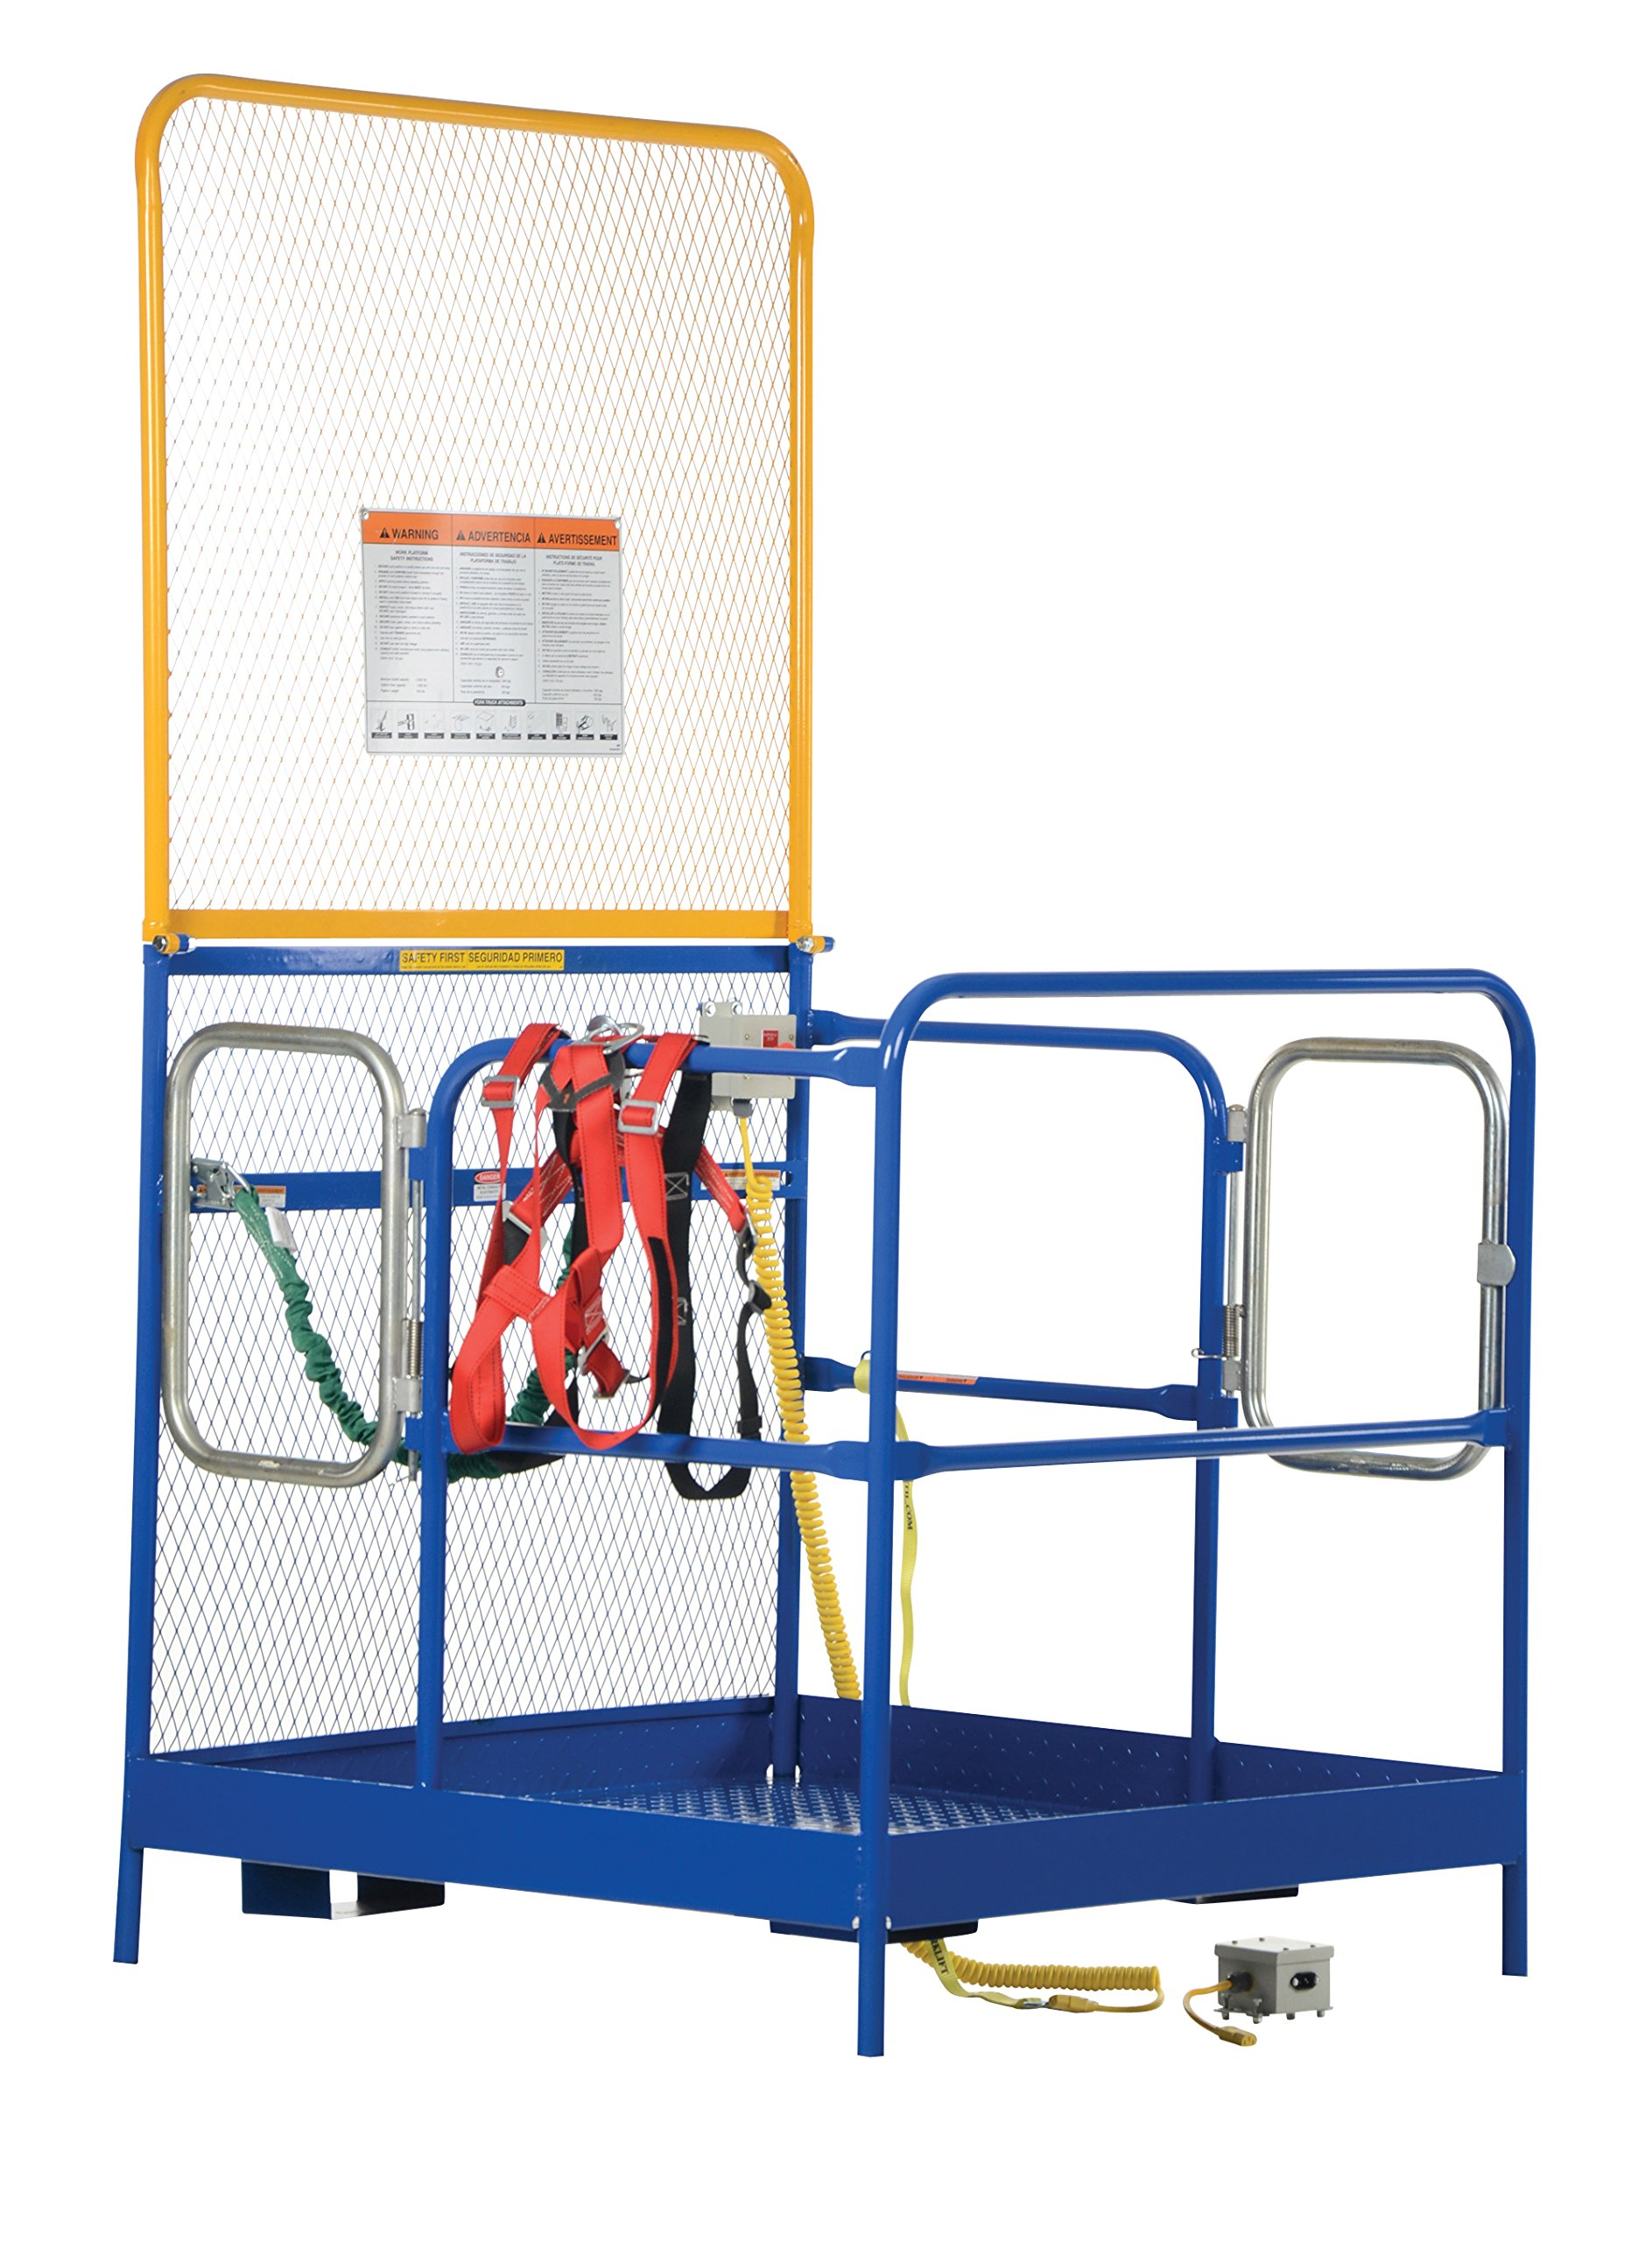 Vestil WP-4848-84B-DD-FF Steel Work Platform, Emergency Stop Button Kit and Web Lanyard with Safety Harness, Double Doors, 1000 lb Capacity, 48'' x 48'' with 84'' Back, Powder Coat Blue